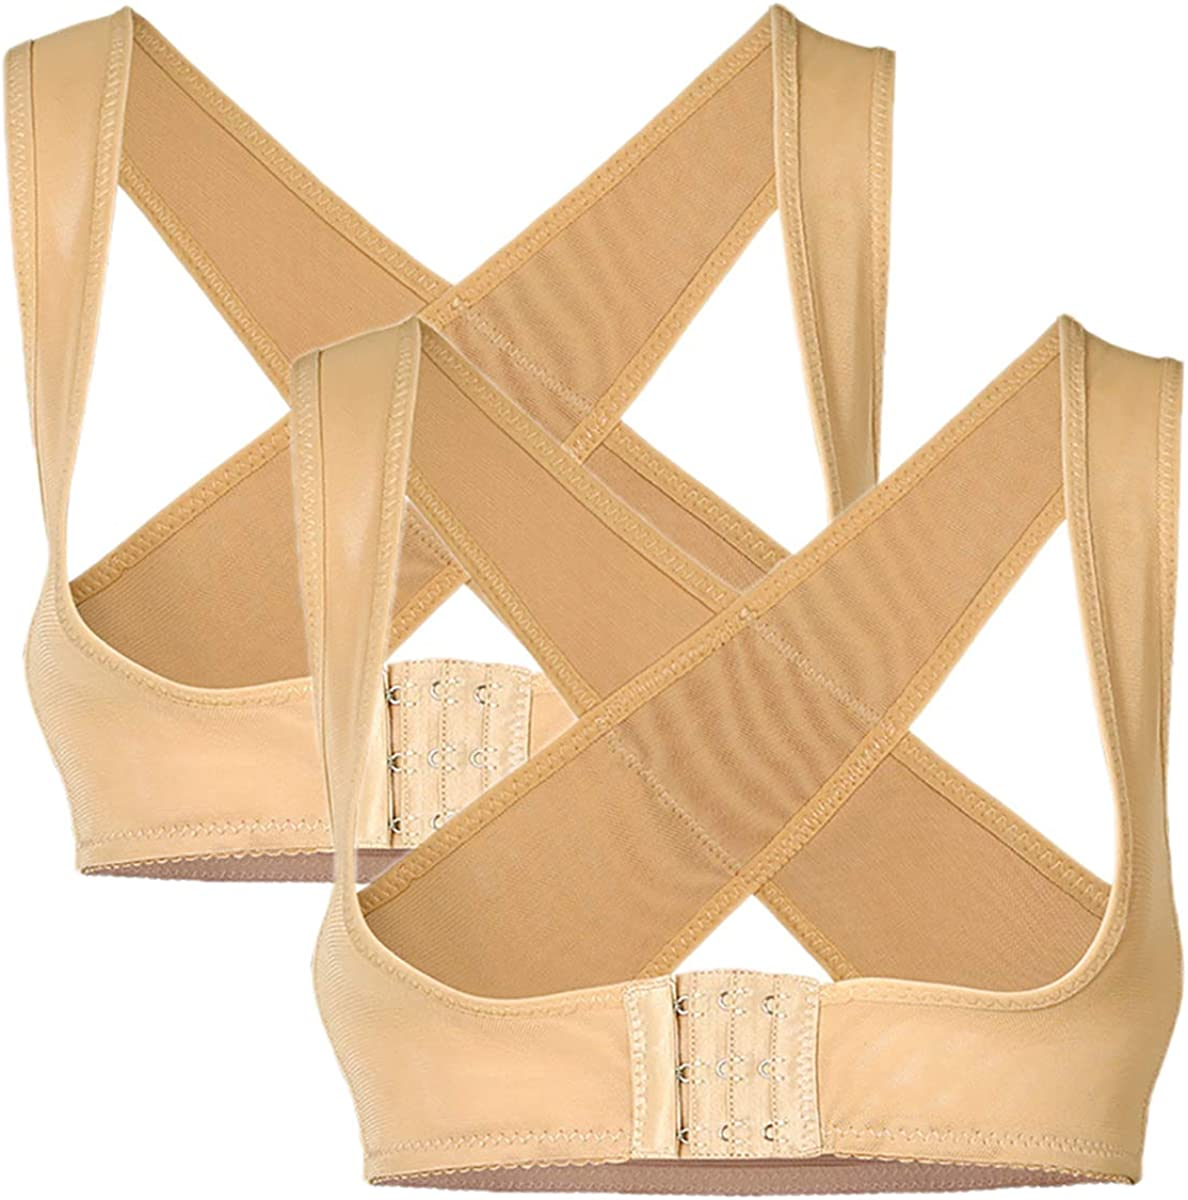 PRETTYWELL Women's Cross Back Posture Corrector Push up Bra Chest Support 2 Pack NY090 (2 Nude, M)